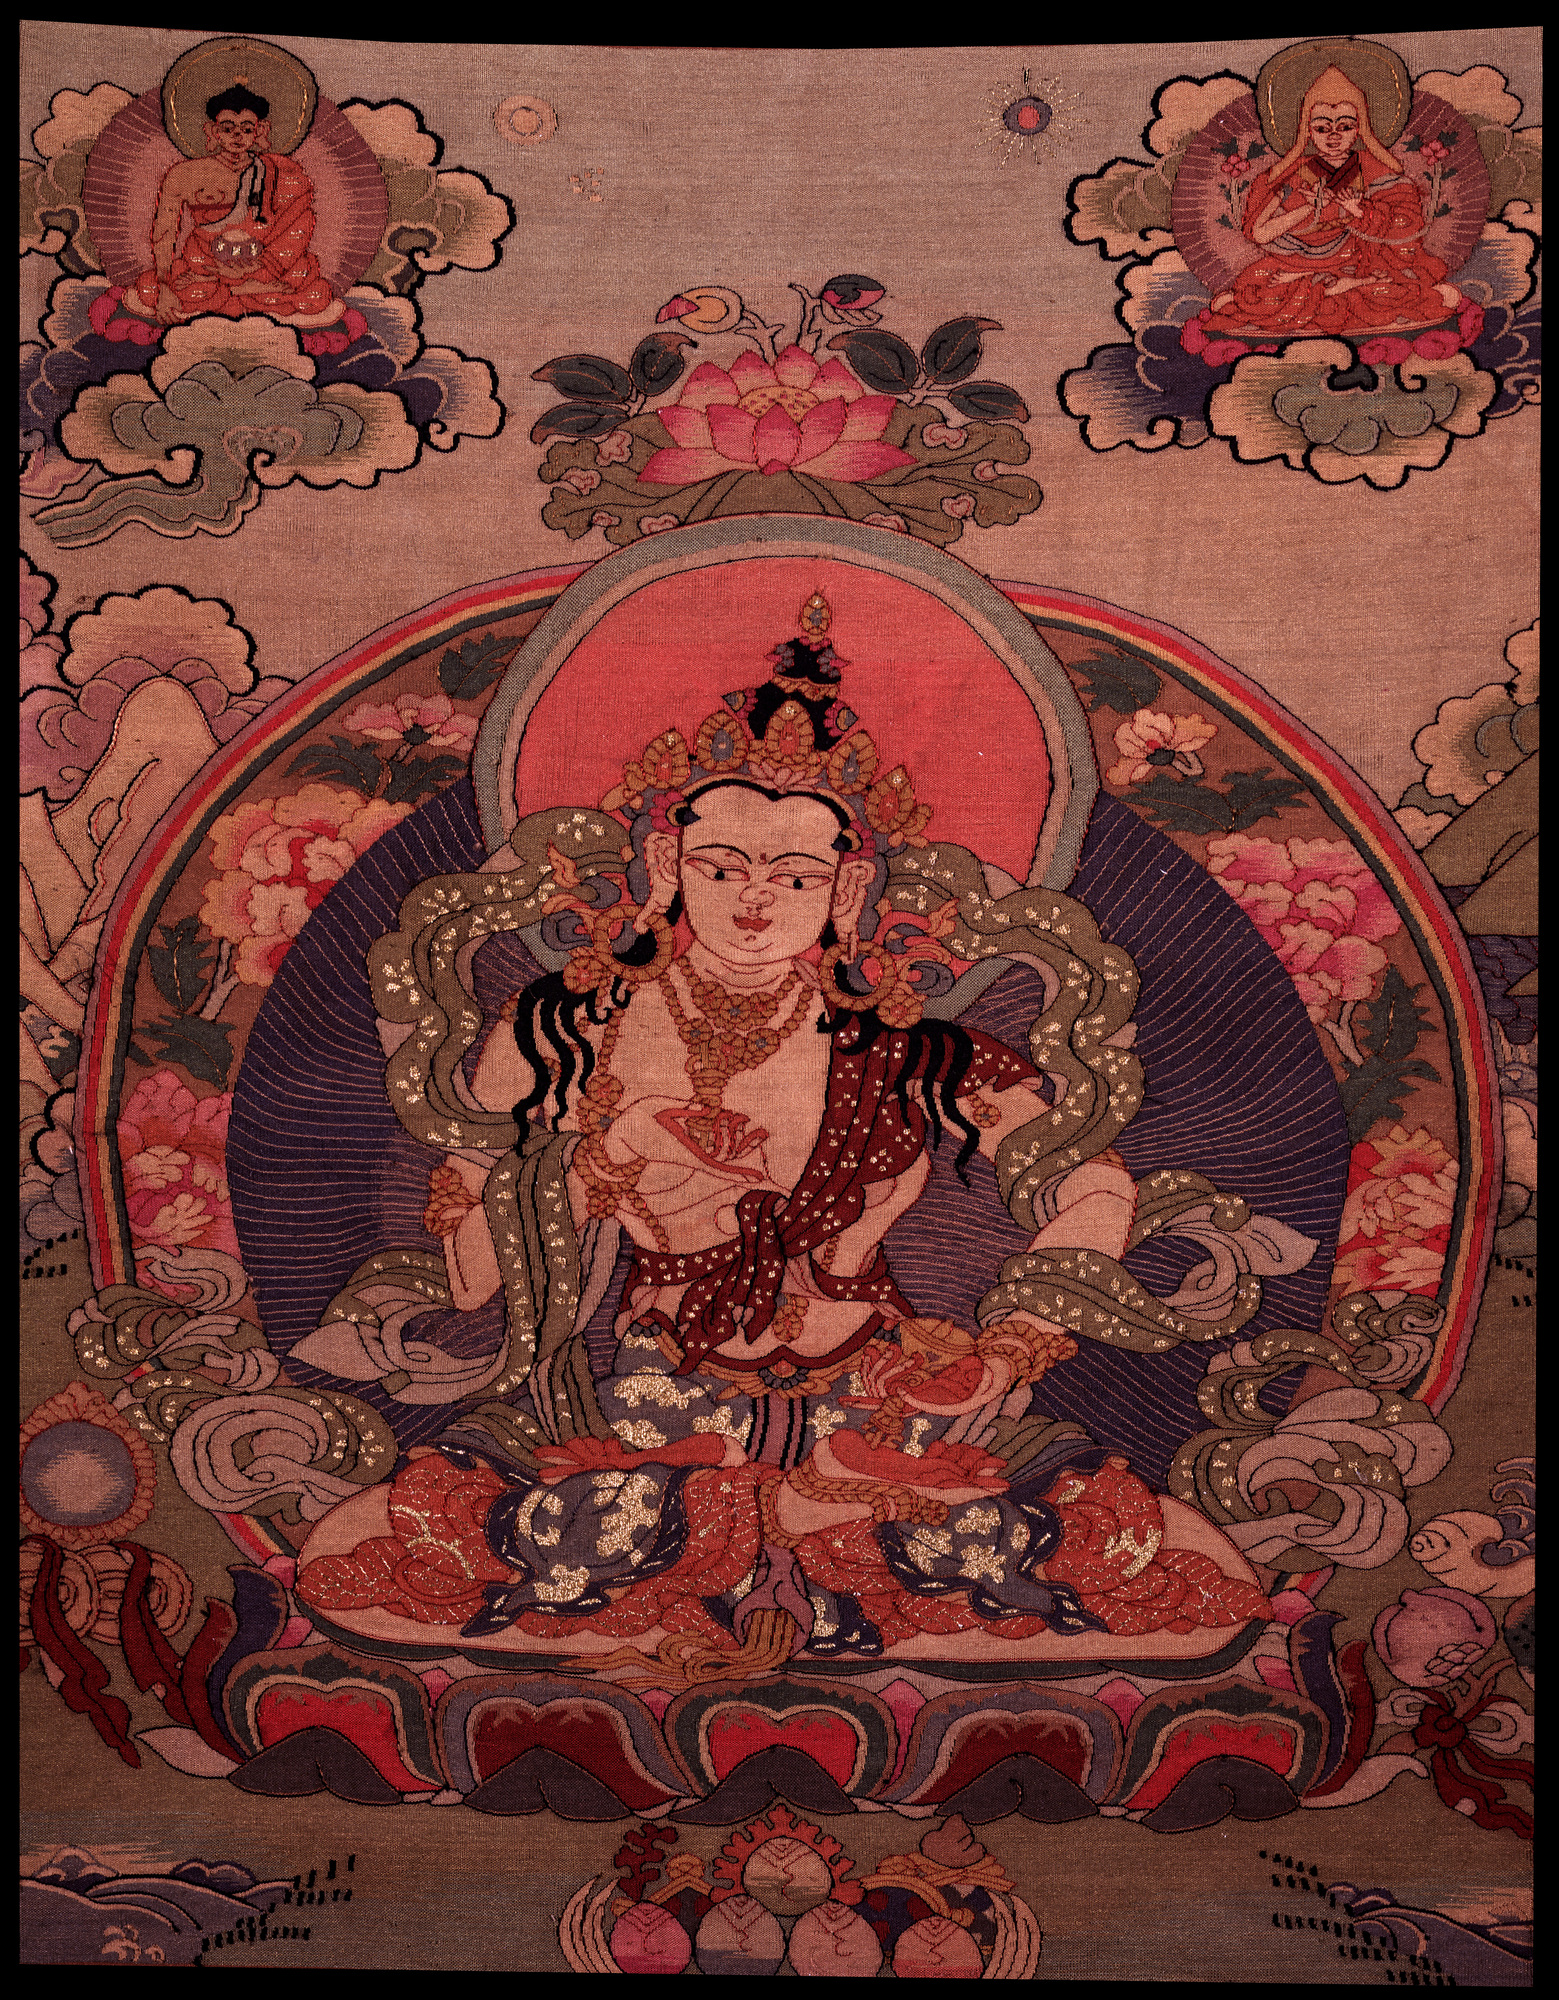 Image of The Heroic Being Vajrasattva